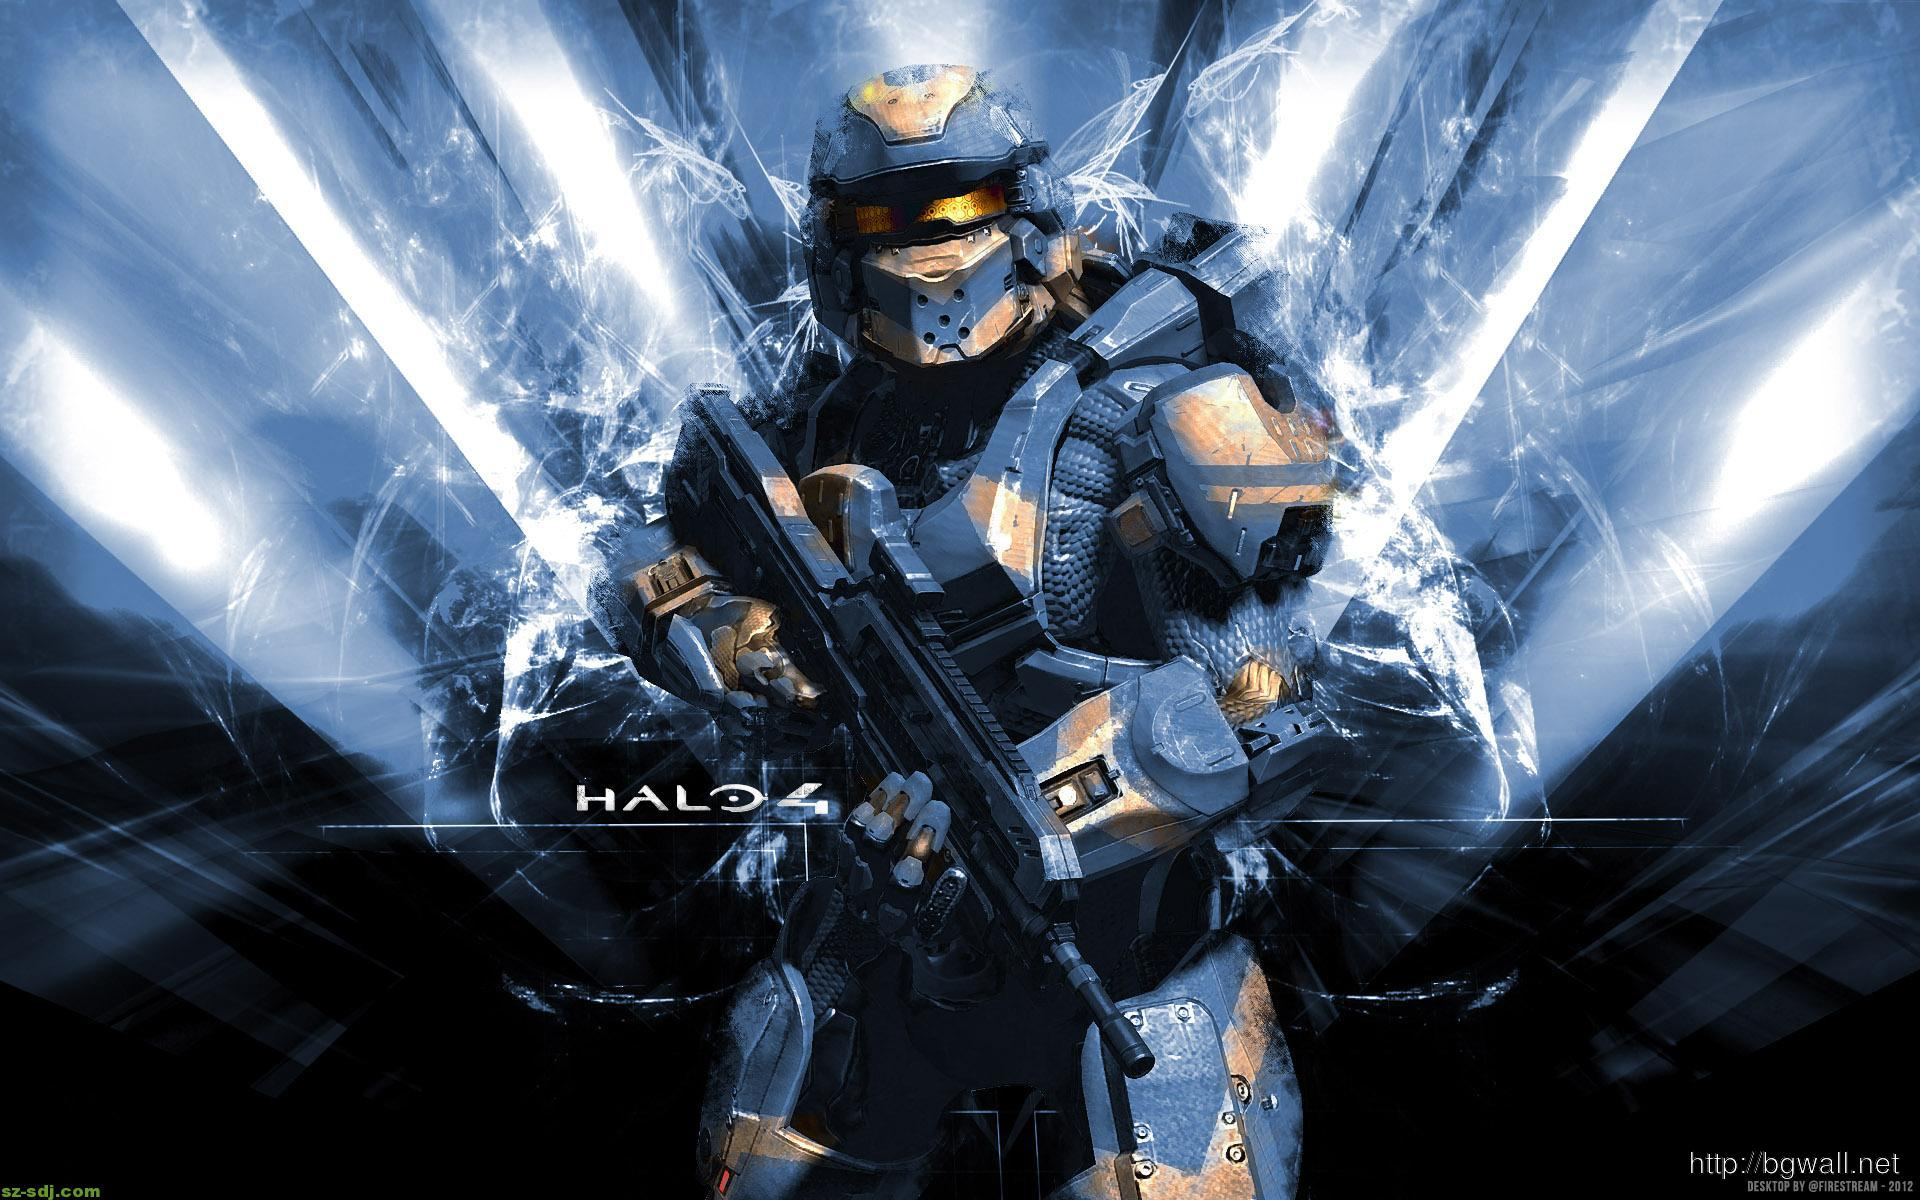 Halo 4 background wallpaper widescreen background wallpaper hd halo 4 background wallpaper widescreen voltagebd Image collections